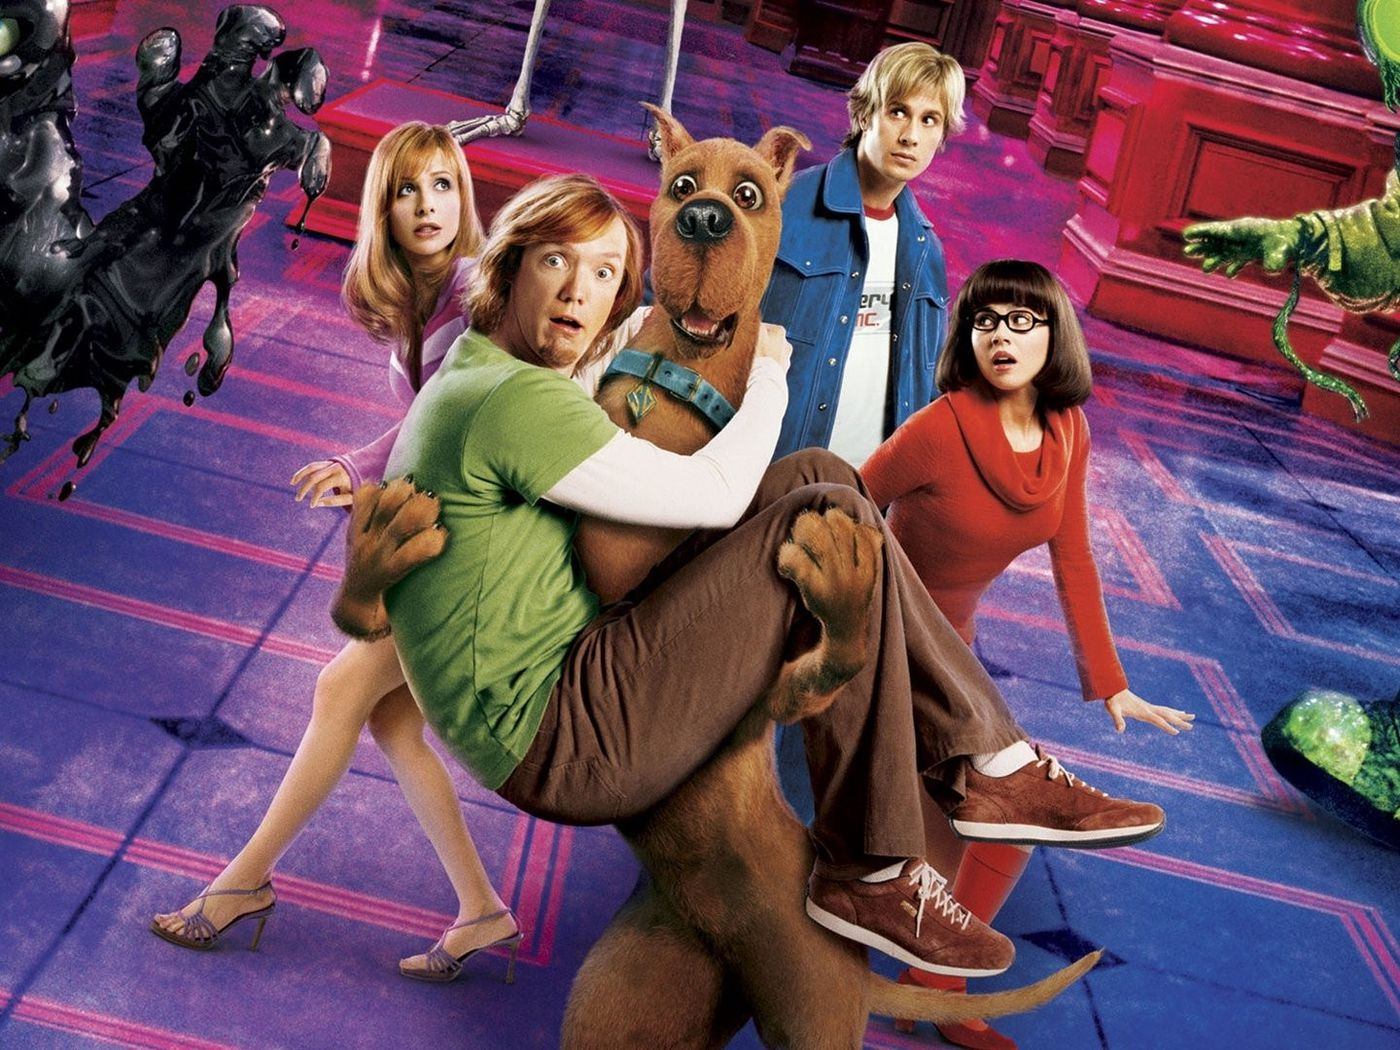 Scoob Can T Top James Gunn S Ridiculous Live Action Scooby Doo Movies Polygon